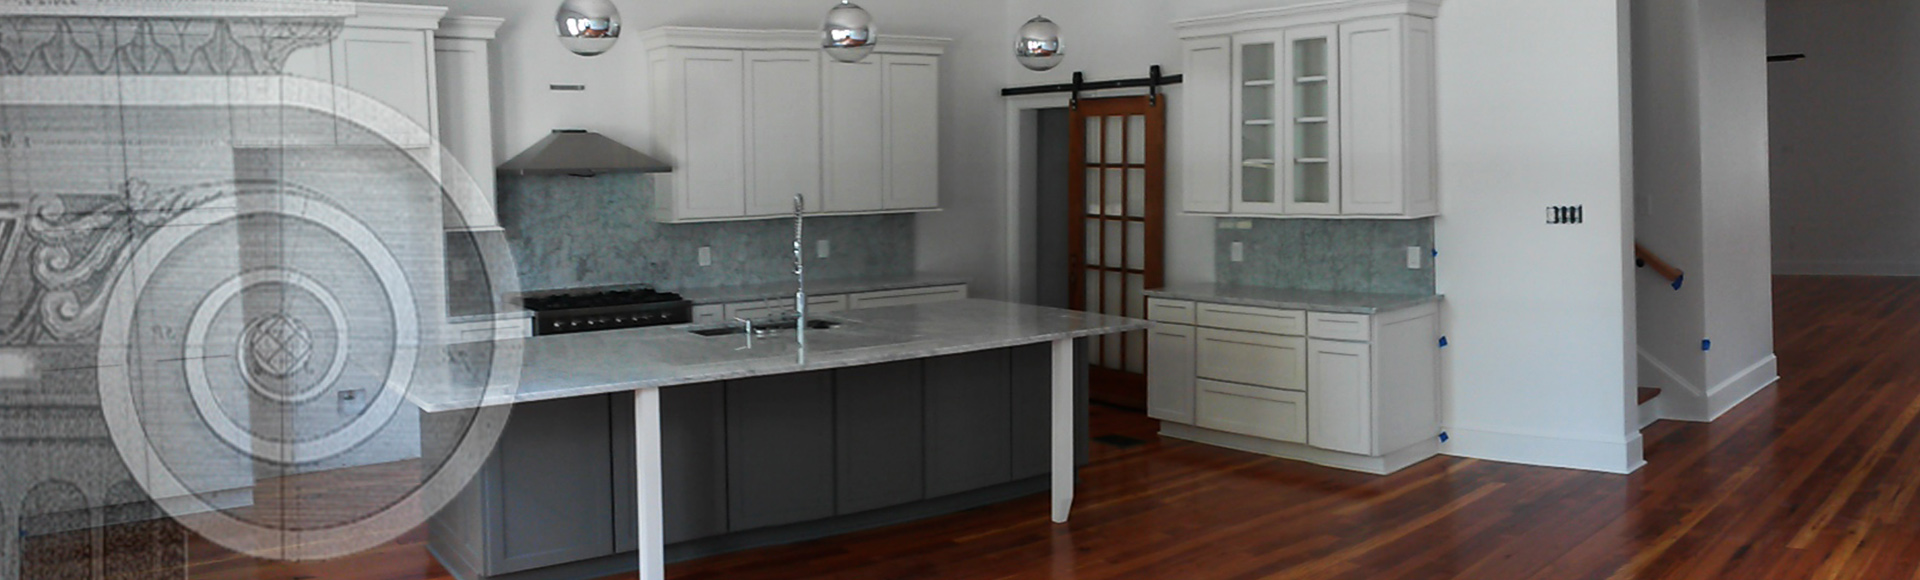 Crescent crown construction a new orleans based for Kitchen cabinets new orleans